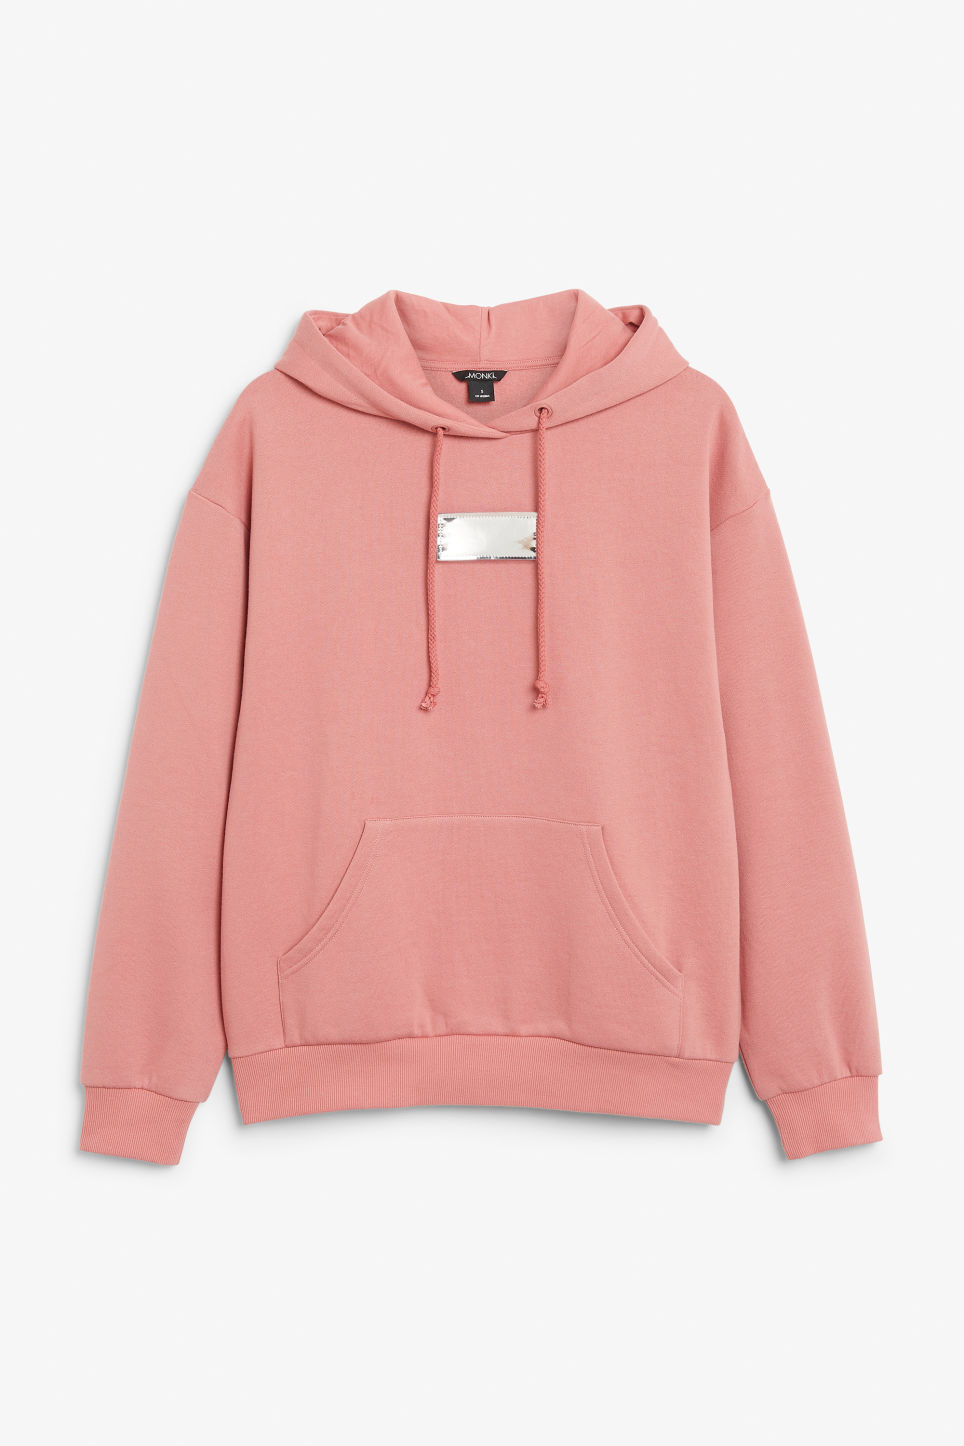 Detailed image of Monki swap-it hoodie in pink